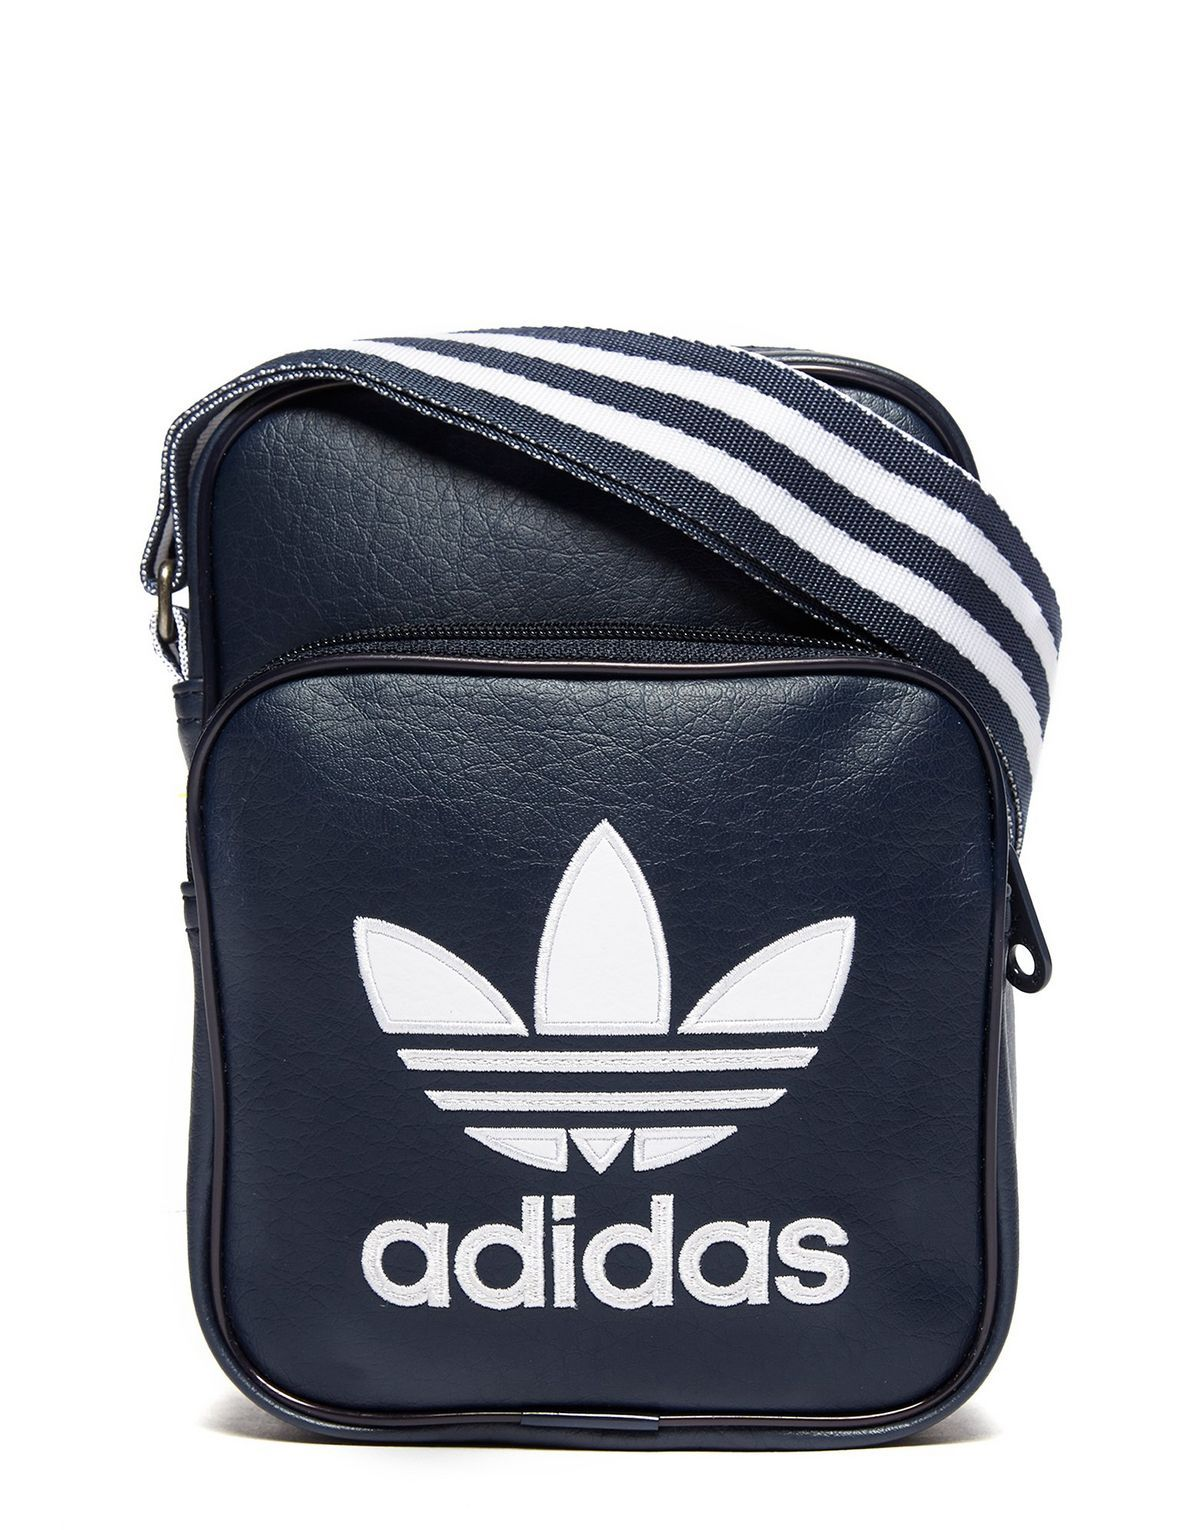 adidas Originals Small Items Bag  8f80fb0f8d264